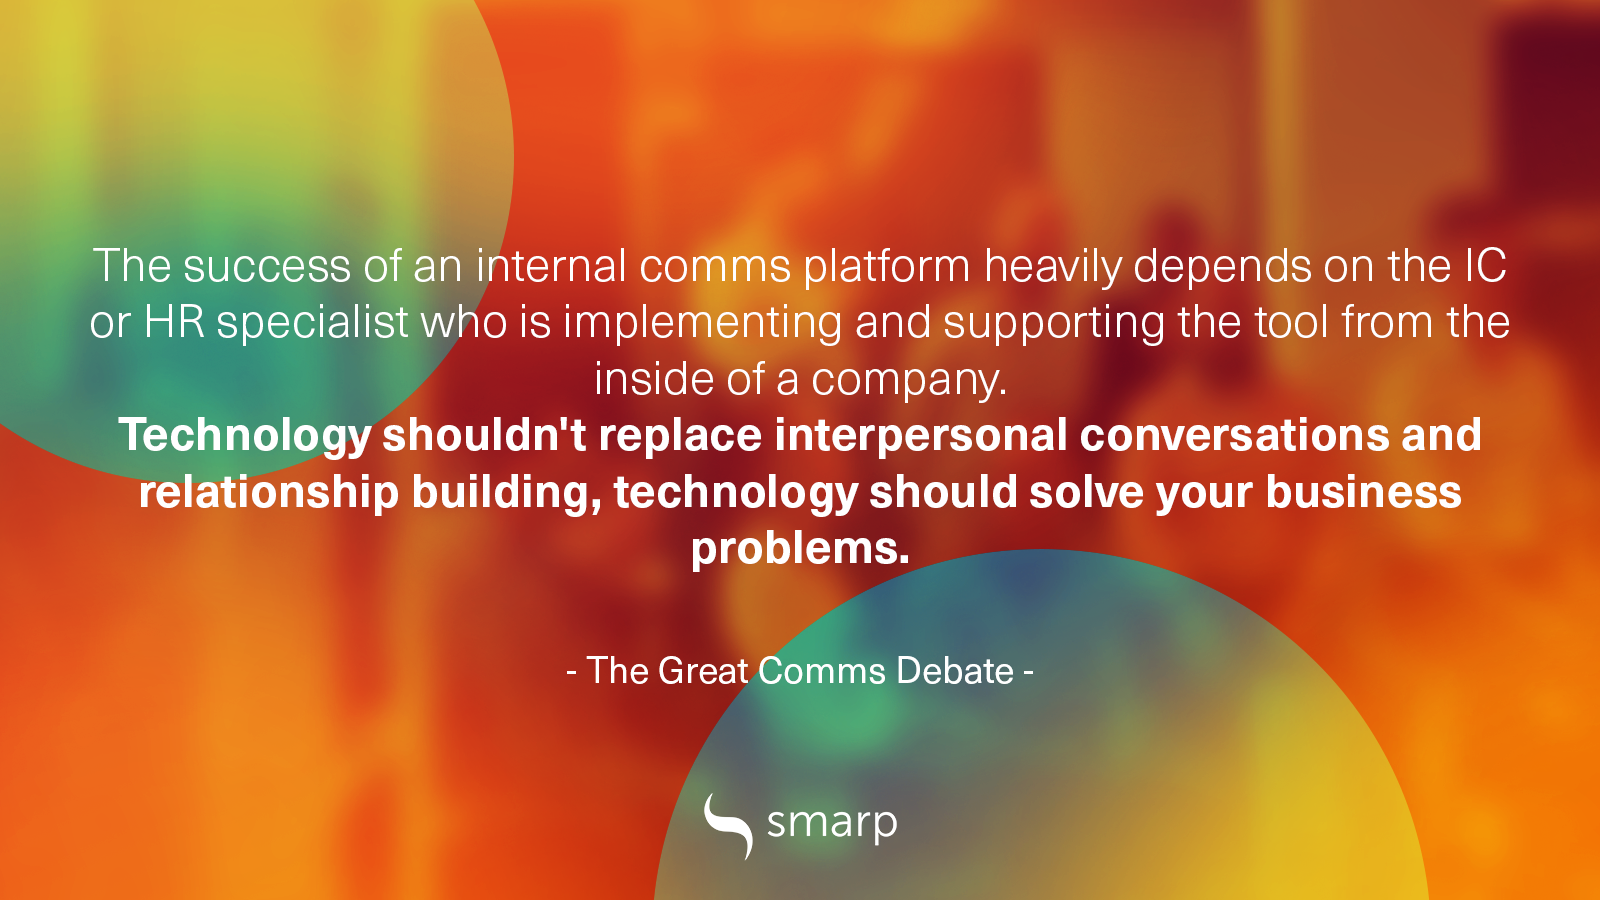 smarp-the-great-comms-debate-internal communication